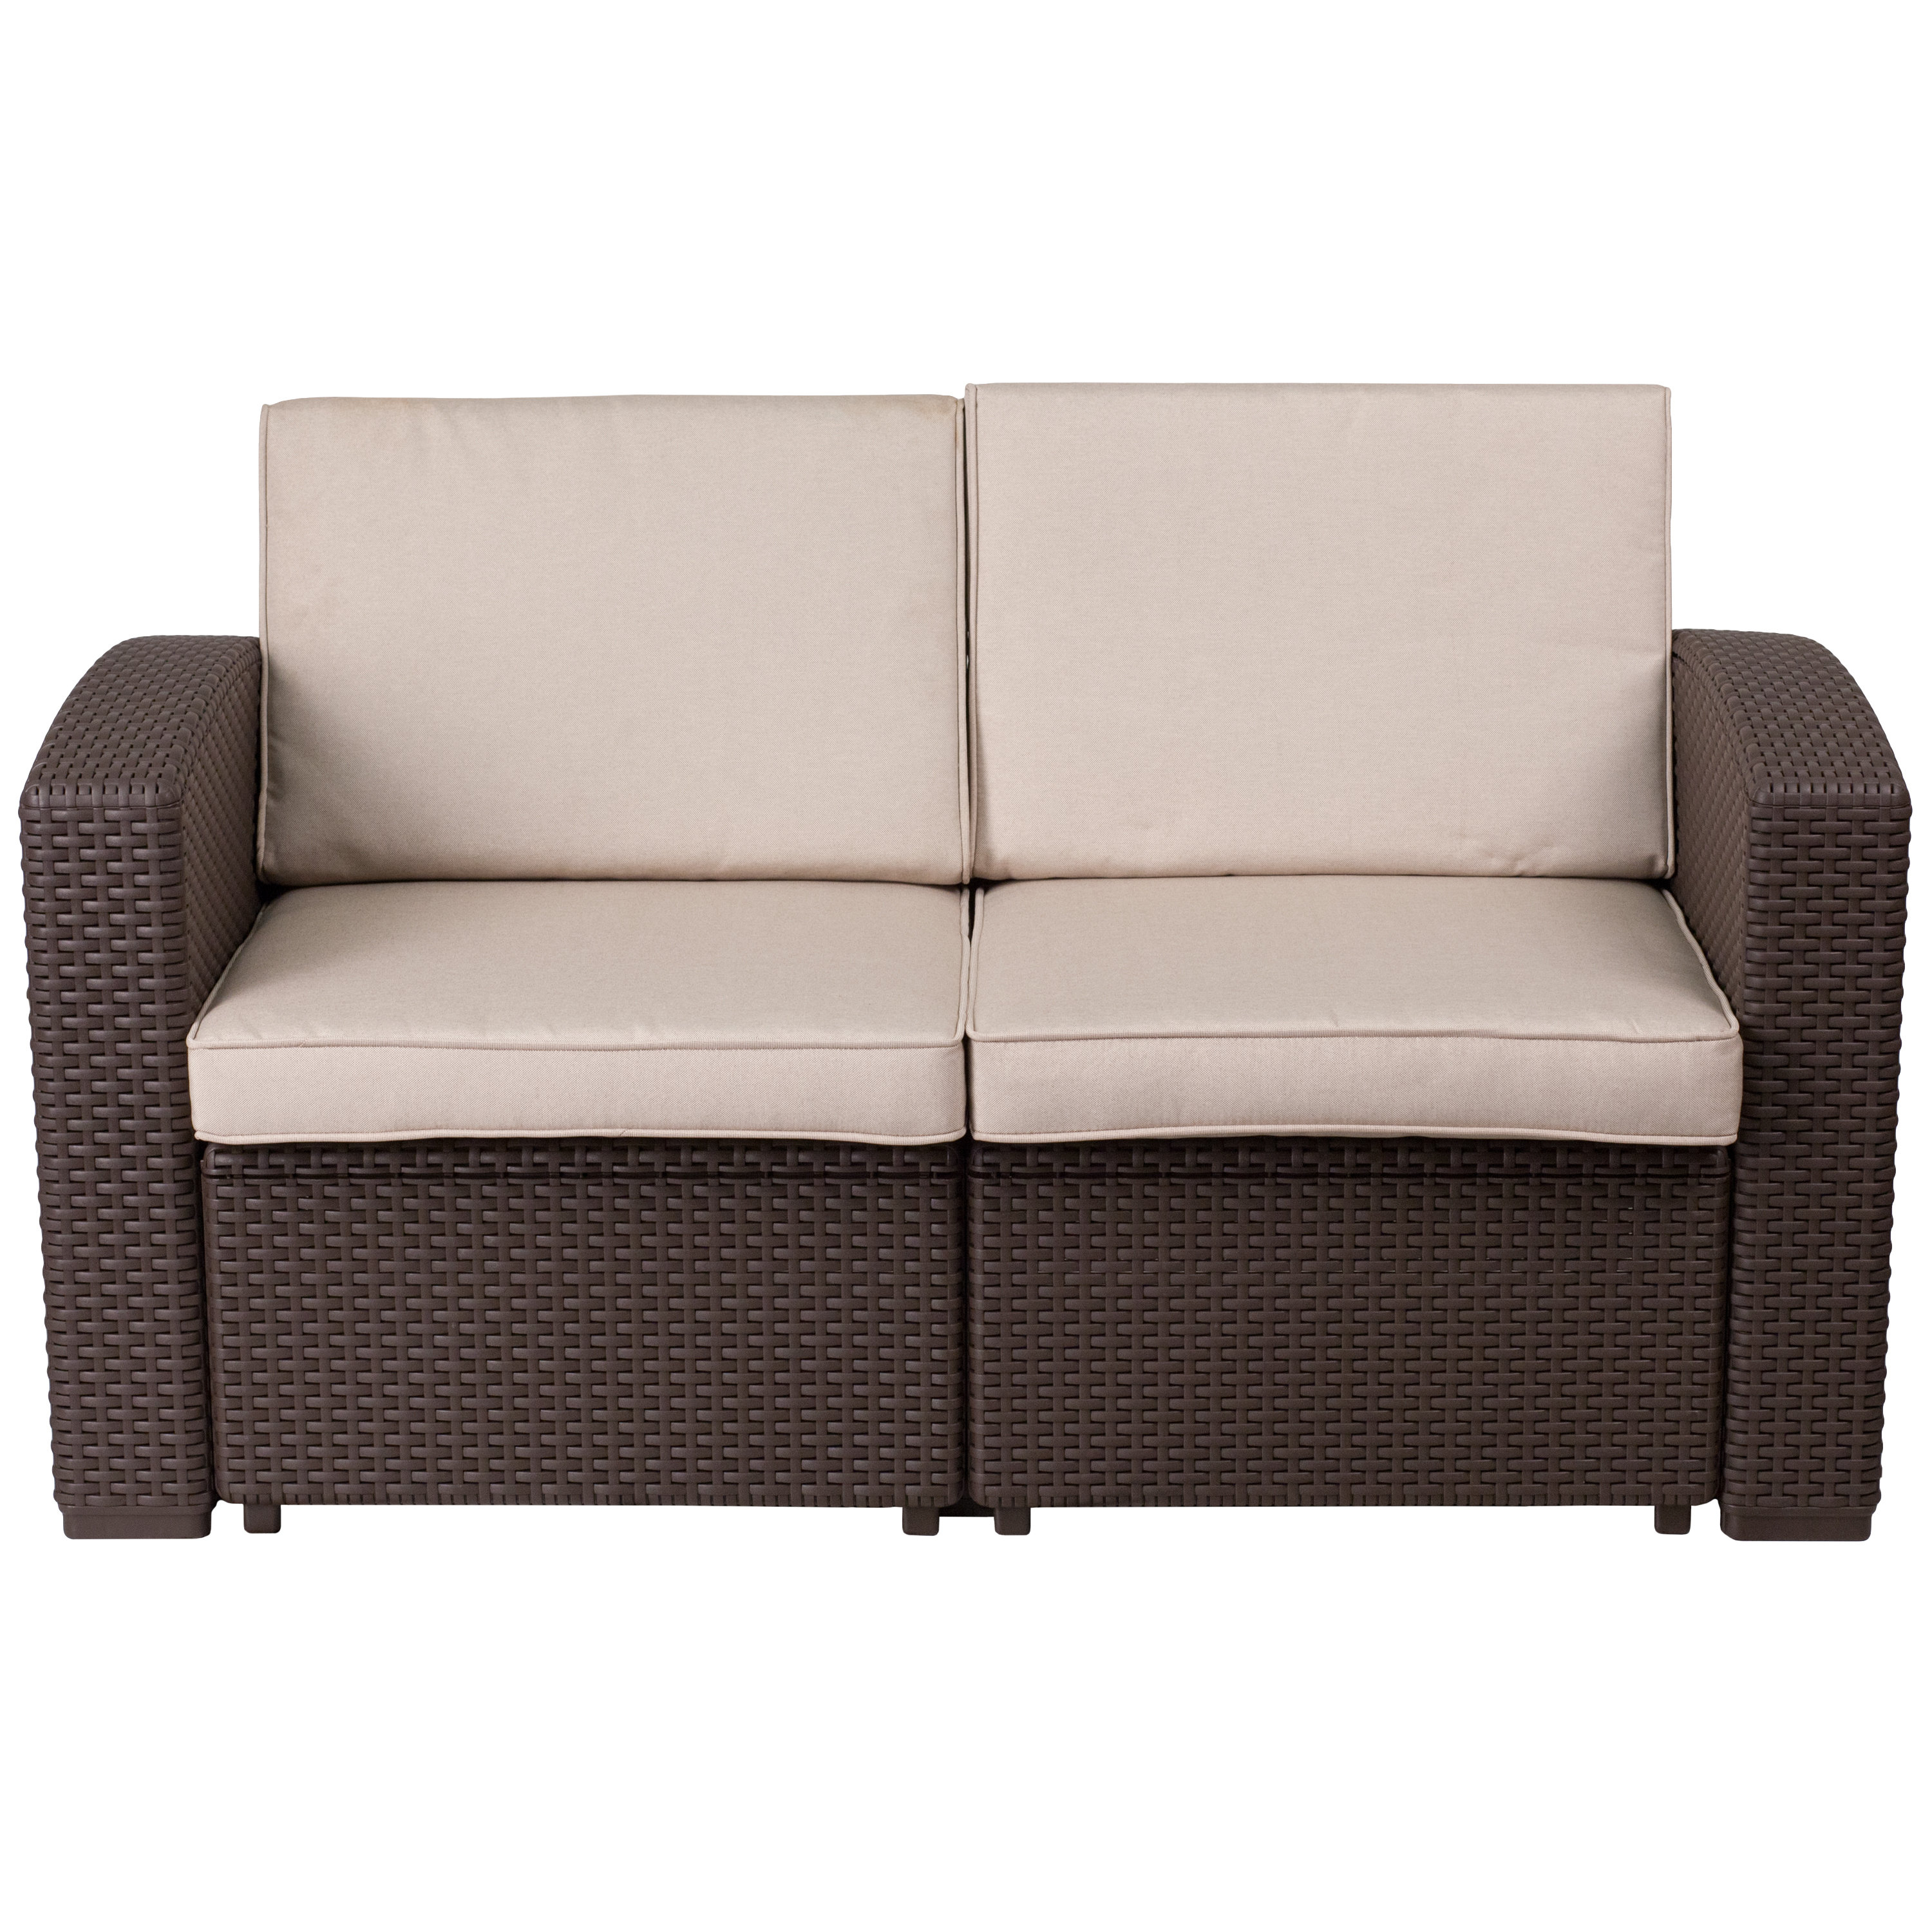 Allmodern In Best And Newest Mosca Patio Loveseats With Cushions (View 1 of 20)